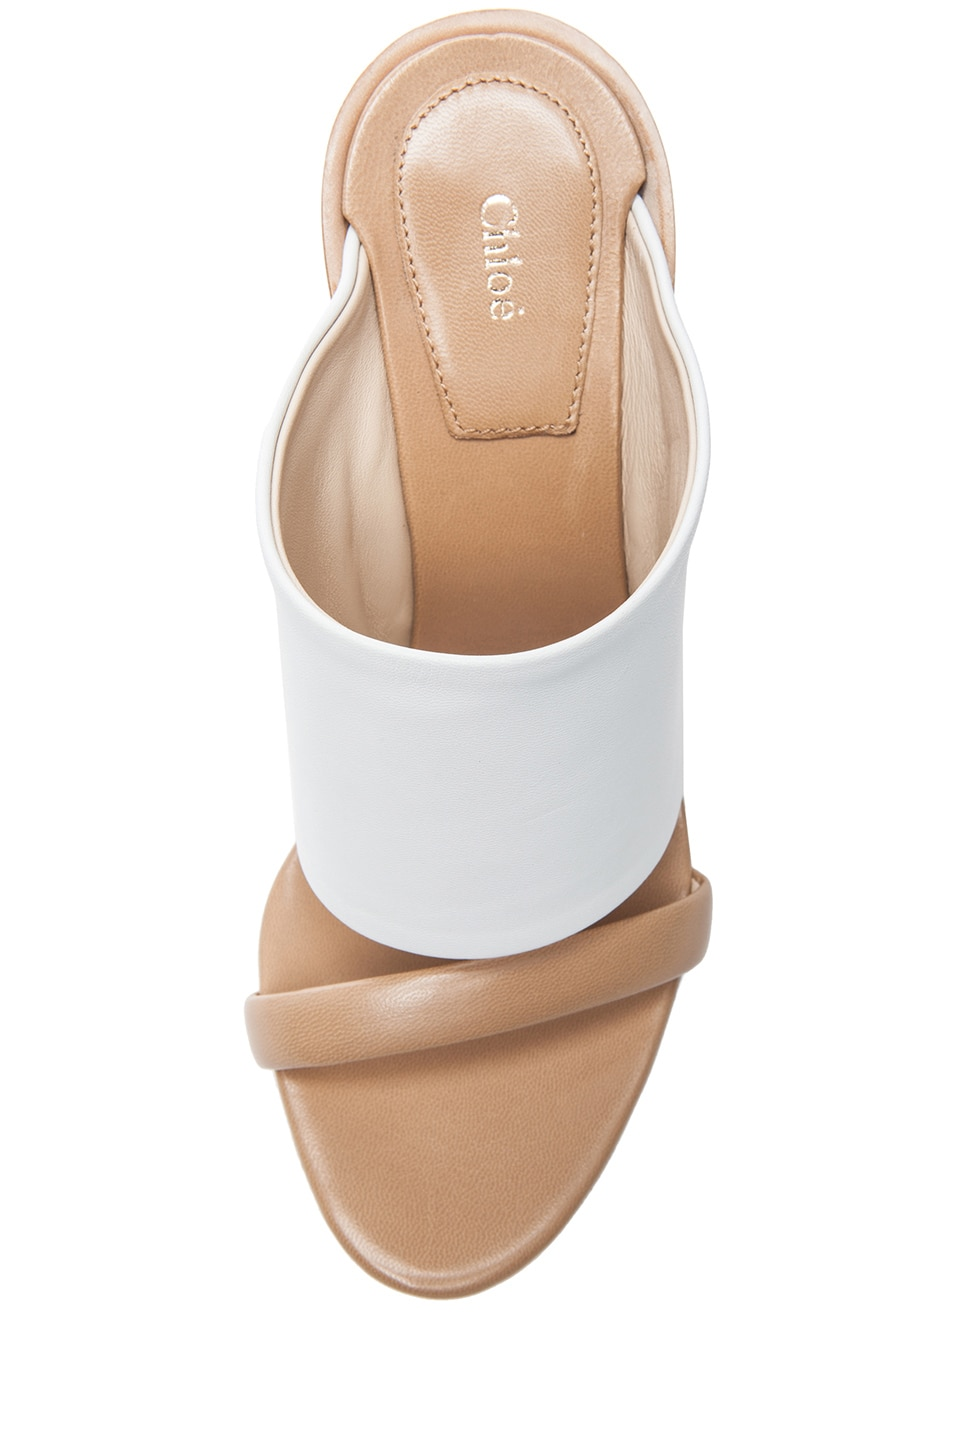 Image 4 of Chloe Mule Nappa Leather Sandals in White & Tan